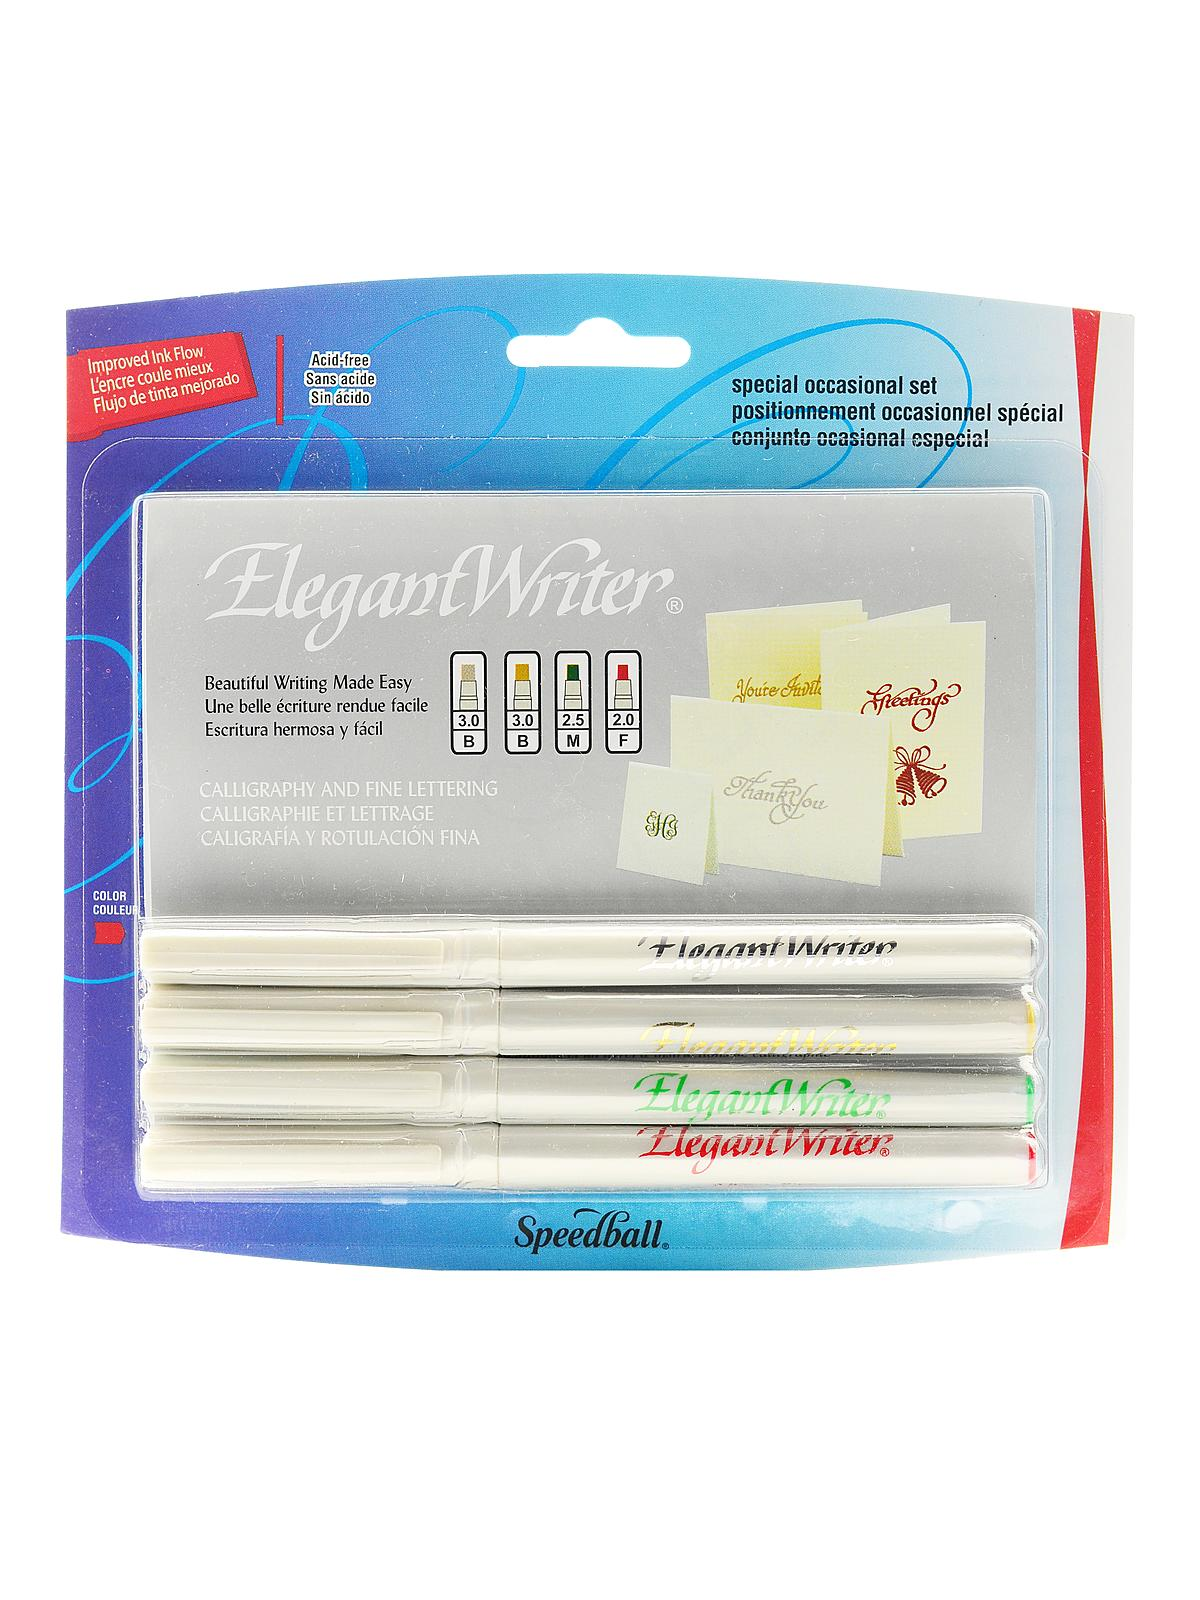 Speedball elegant writer calligraphy marker sets Elegant writer calligraphy pens